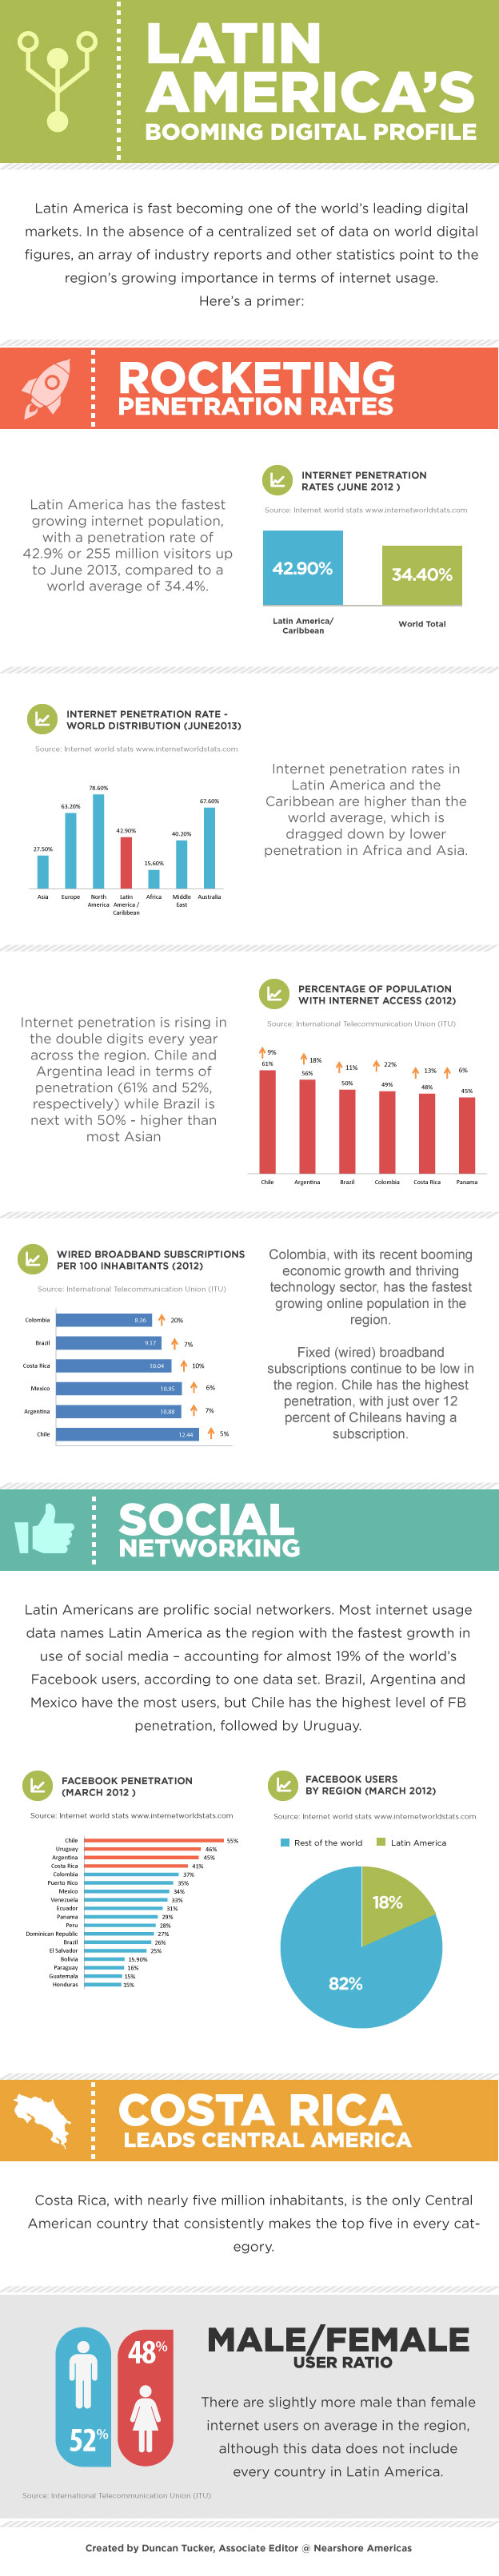 infographic Infographic: Latin Americas Booming Digital Profile